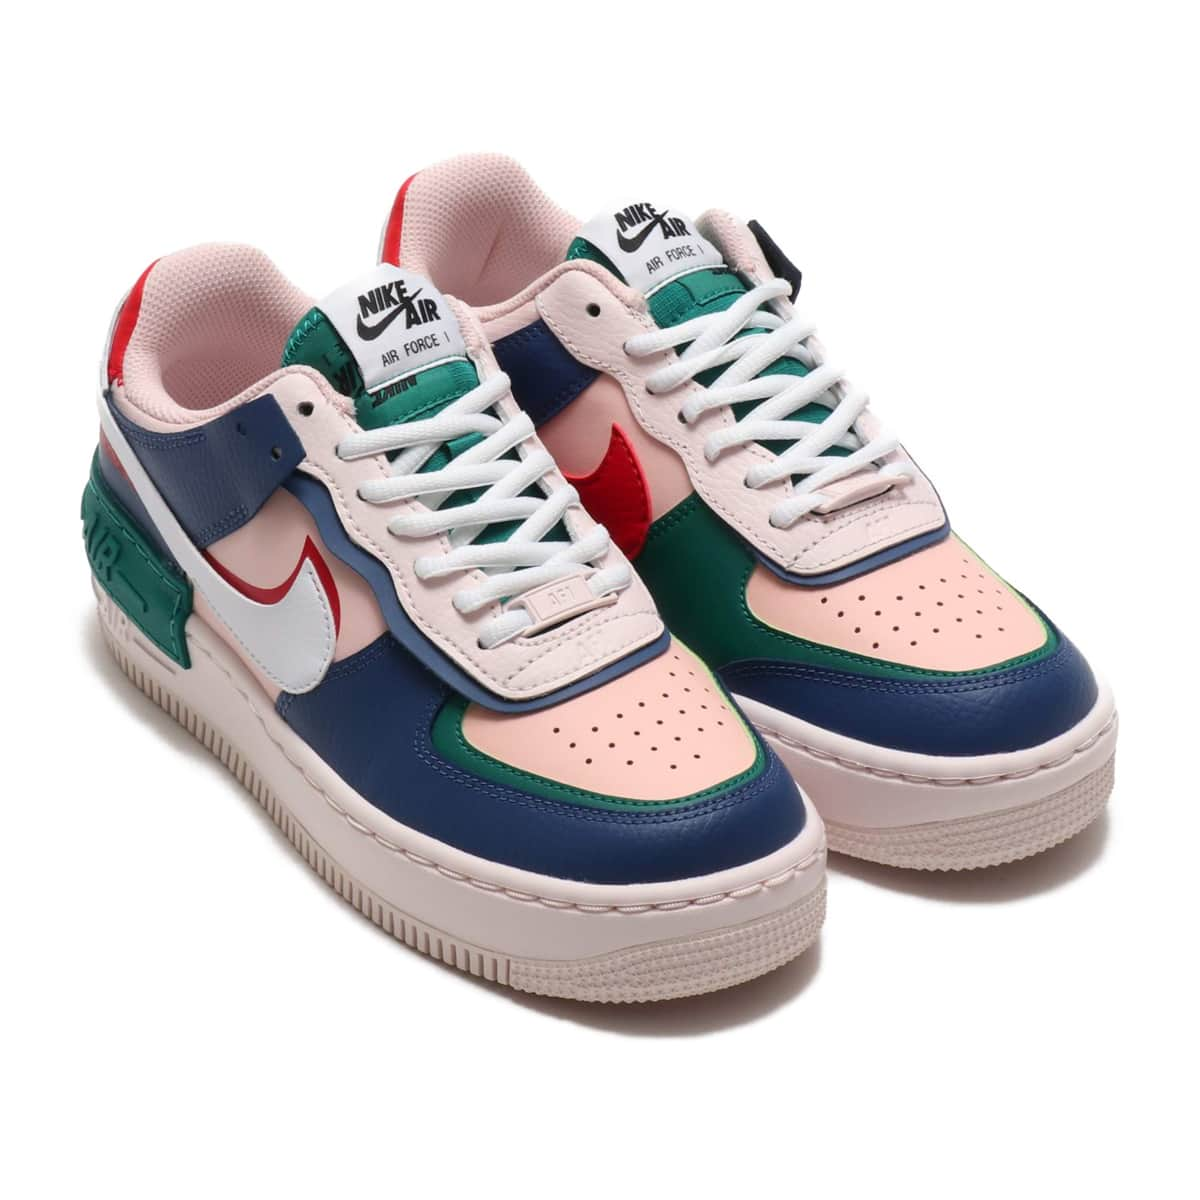 NIKE W AF1 SHADOW MYSTIC NAVY/WHITE-ECHO PINK-GYM RED 19HO-S_photo_large